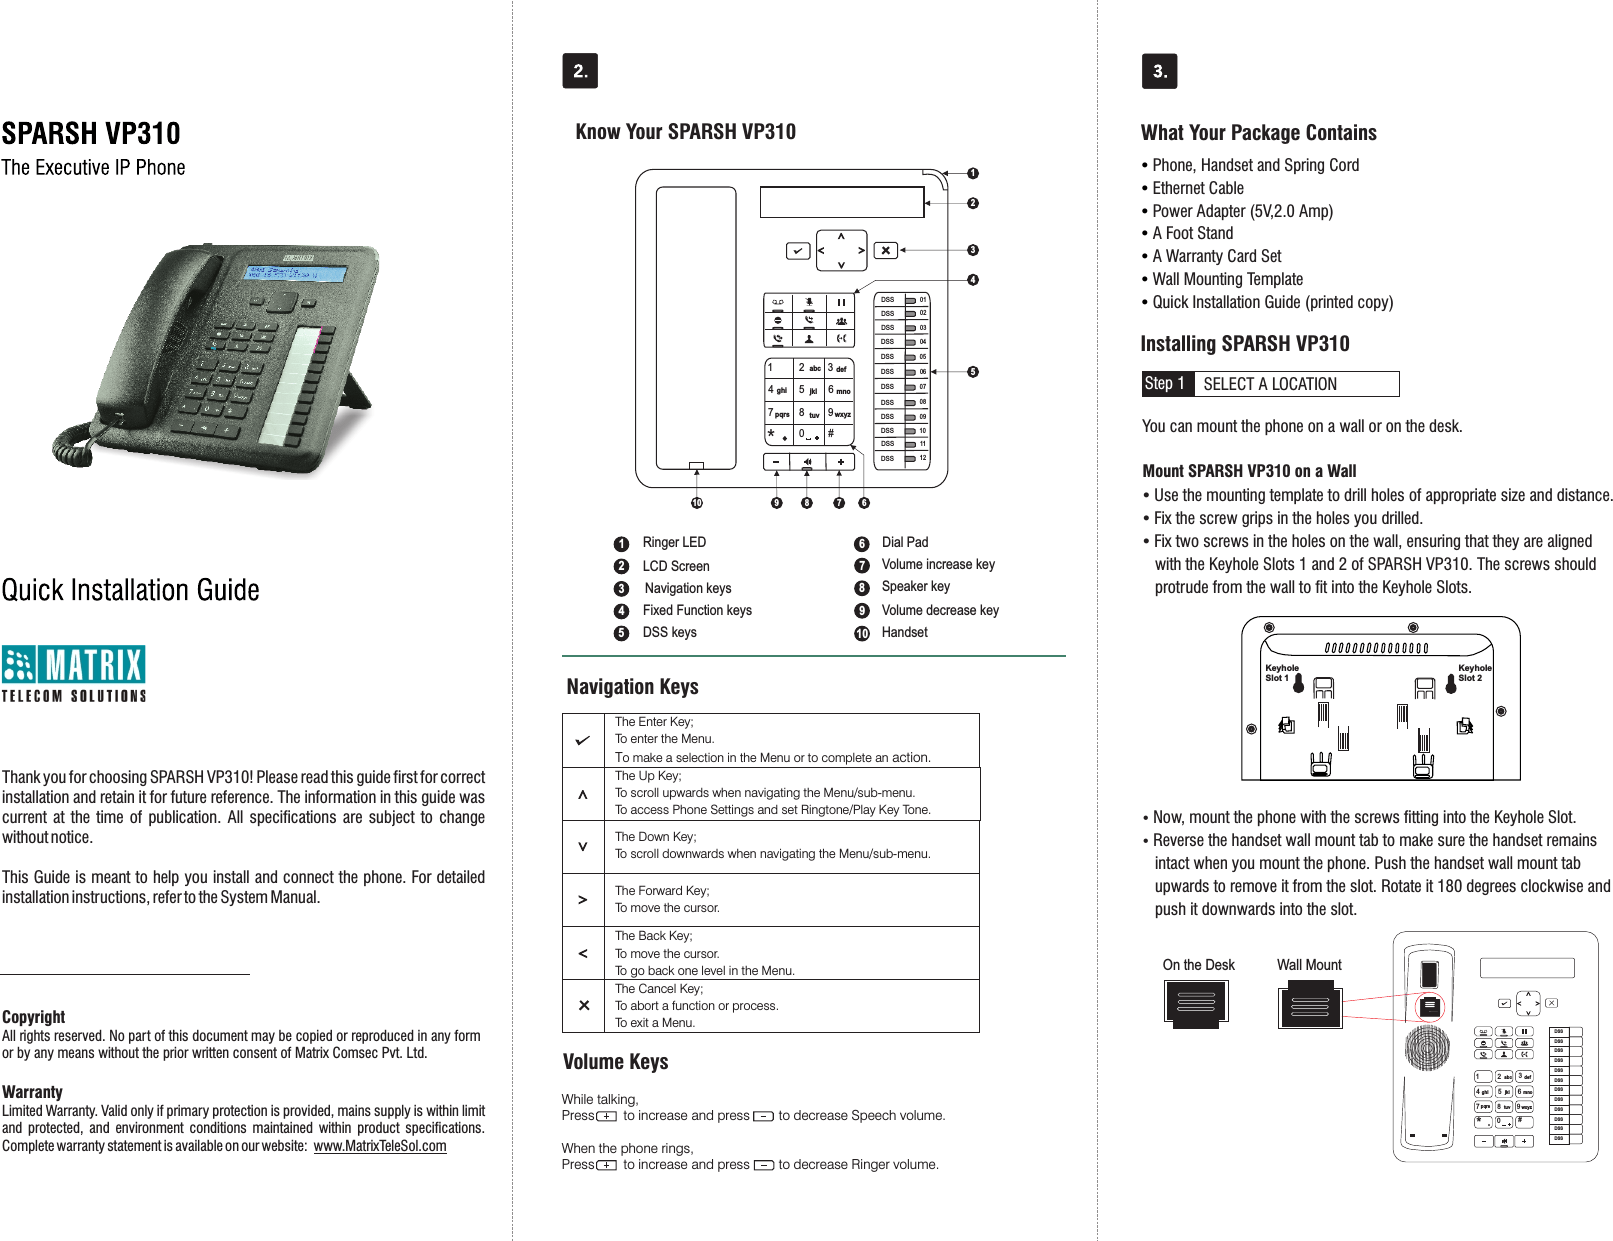 MATRIX COMSEC PVT VP310 SPARSH VP User Manual SPARSH VP310